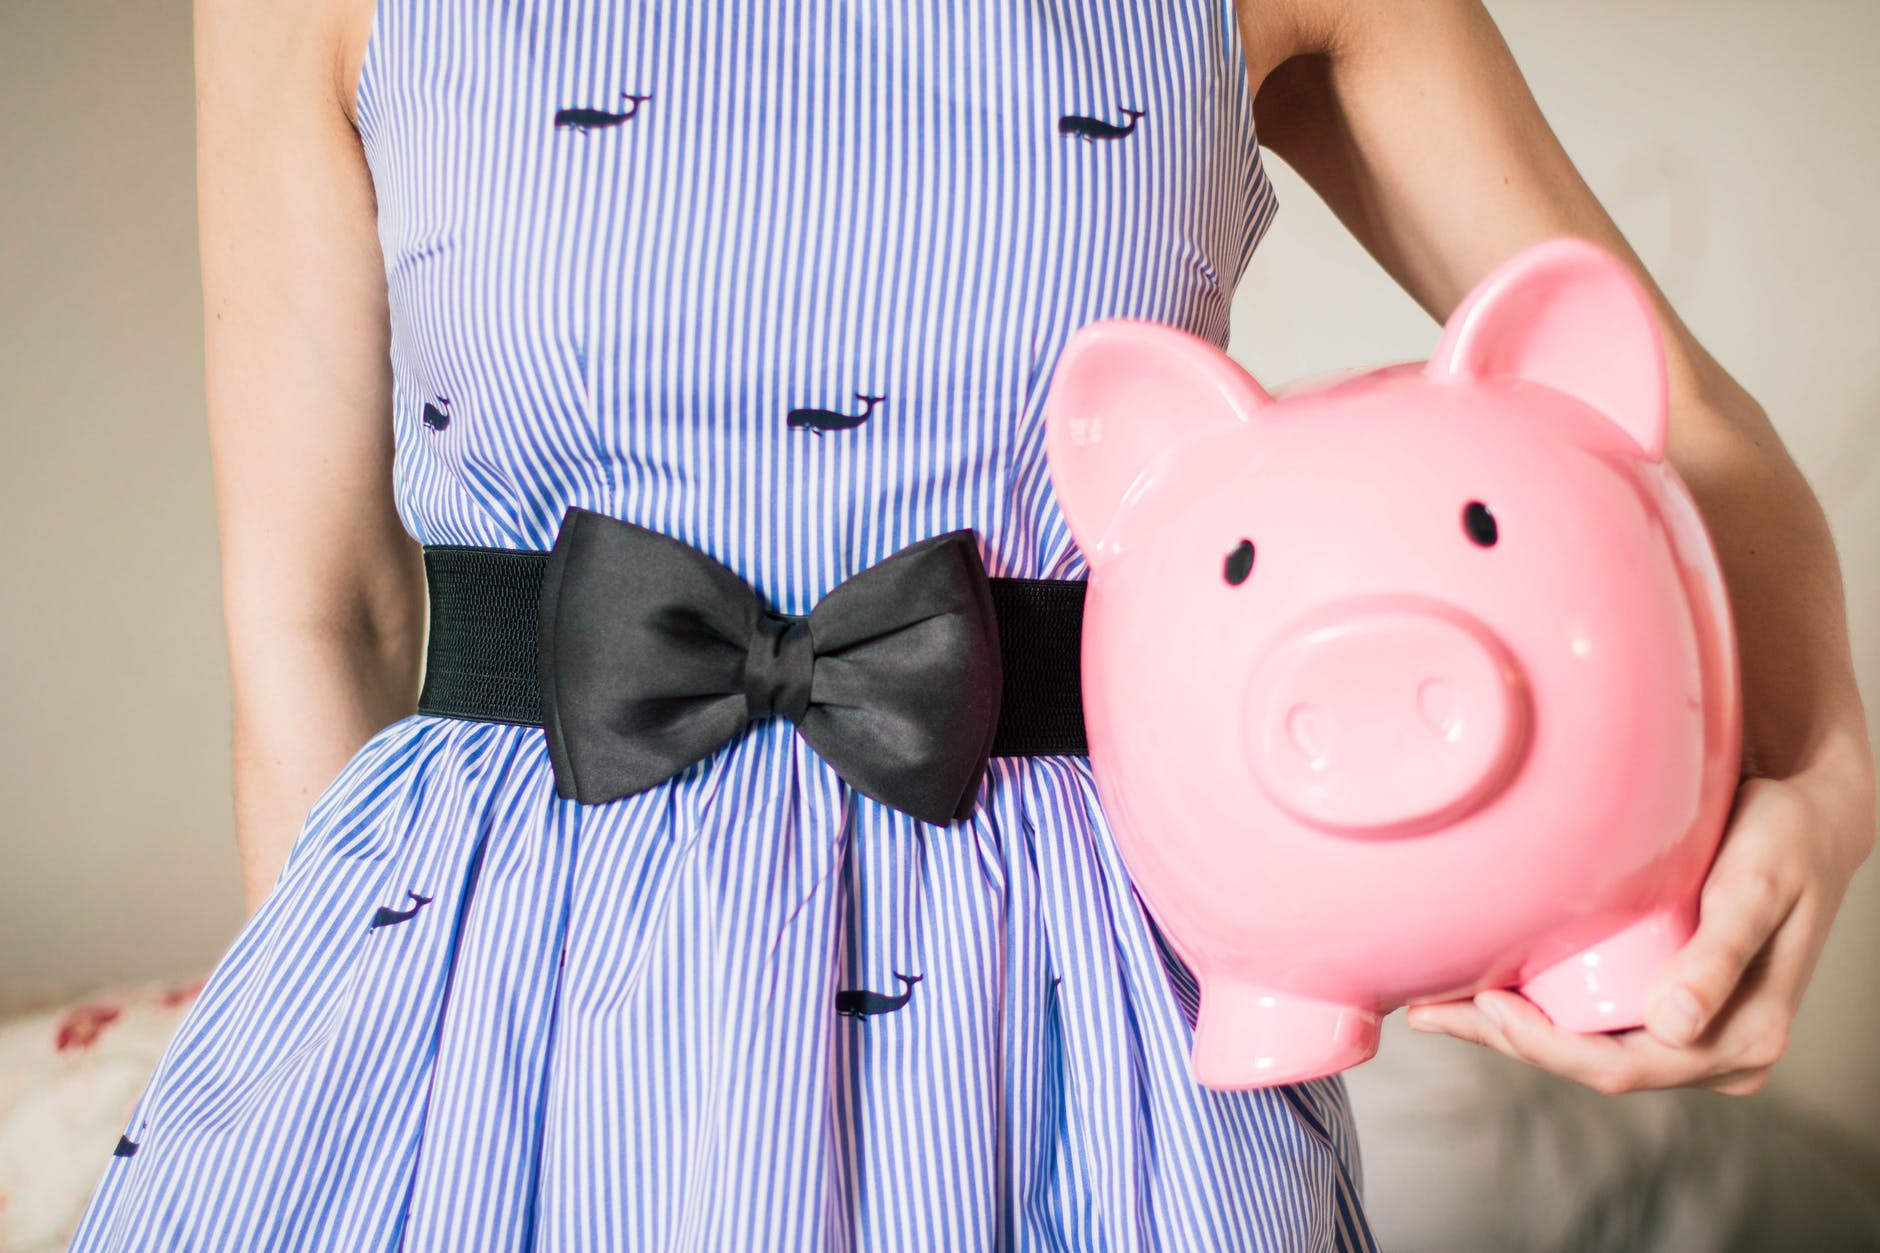 A woman in a blue dress holding a large piggy bank for saving money.